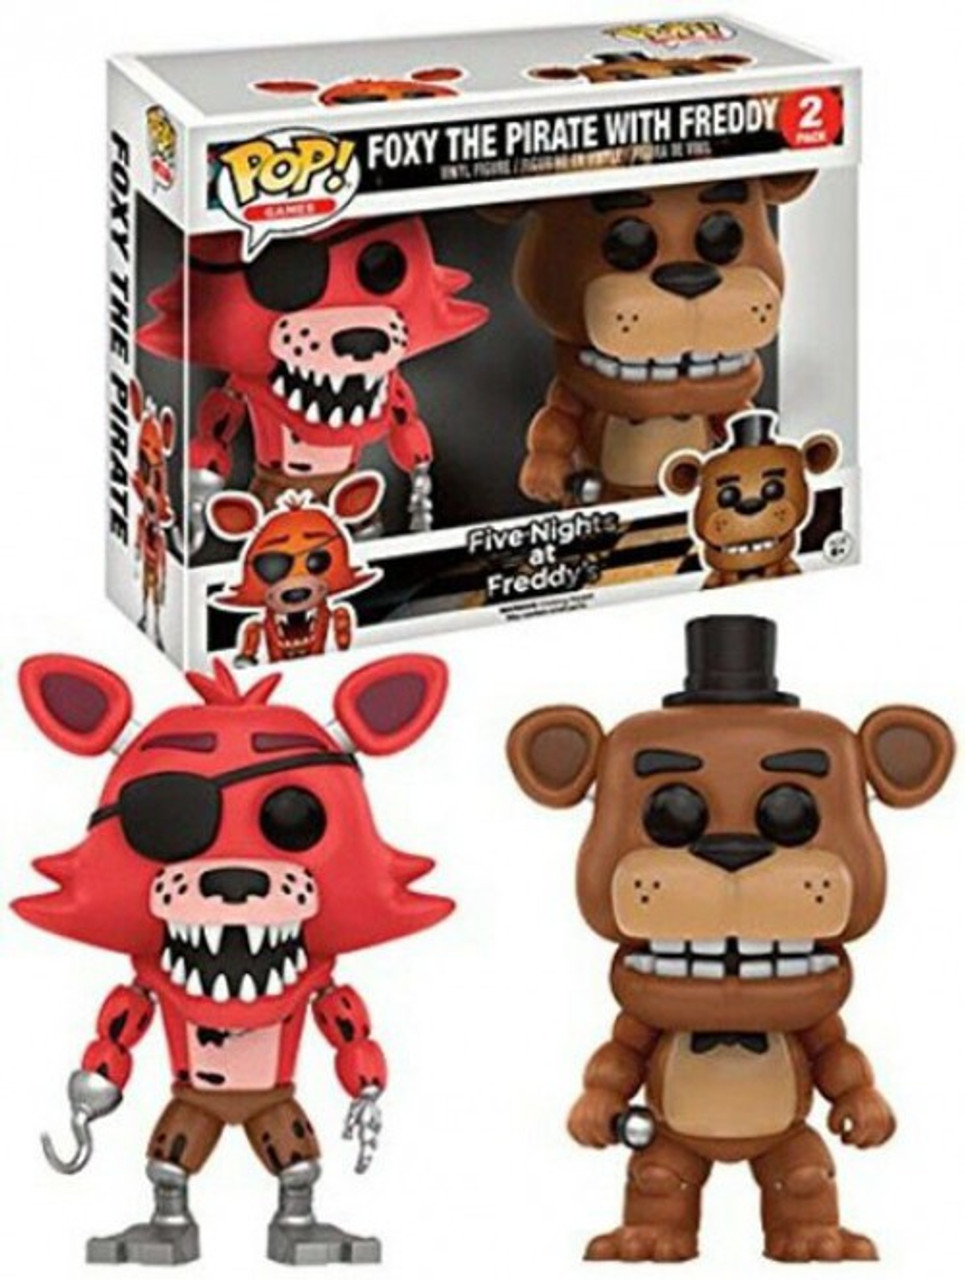 Five Nights at Freddy's Funko POP! Games Foxy the Pirate with Freddy  Exclusive Vinyl Figure 2-Pack